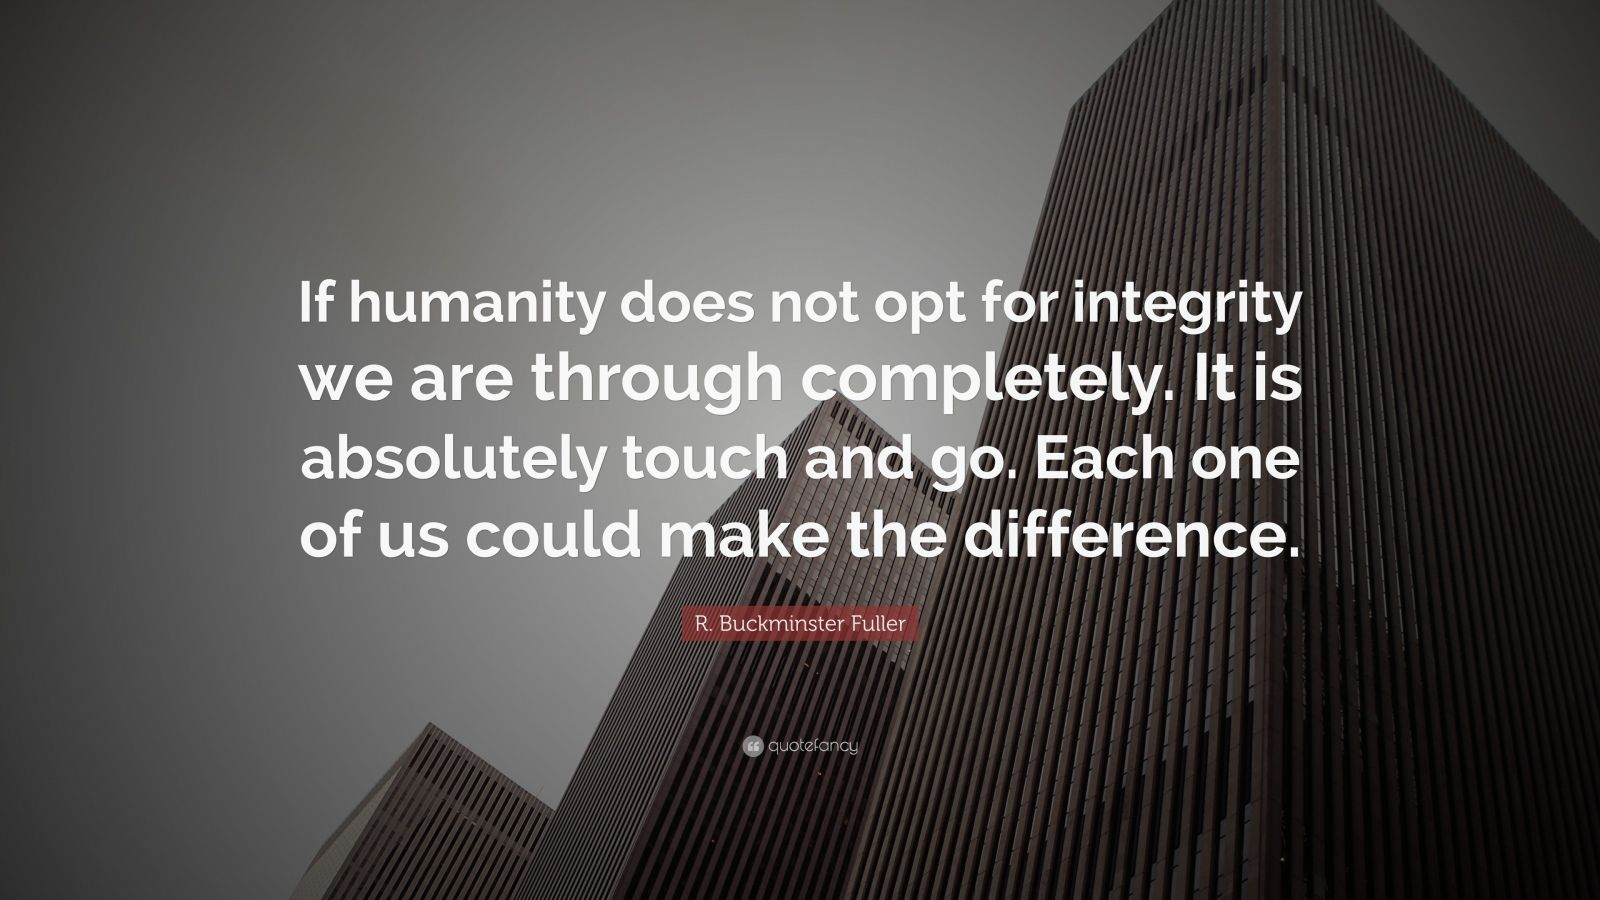 """R. Buckminster Fuller Quote: """"If humanity does not opt for integrity we are through completely. It is absolutely touch and go. Each one of us could make the difference."""""""